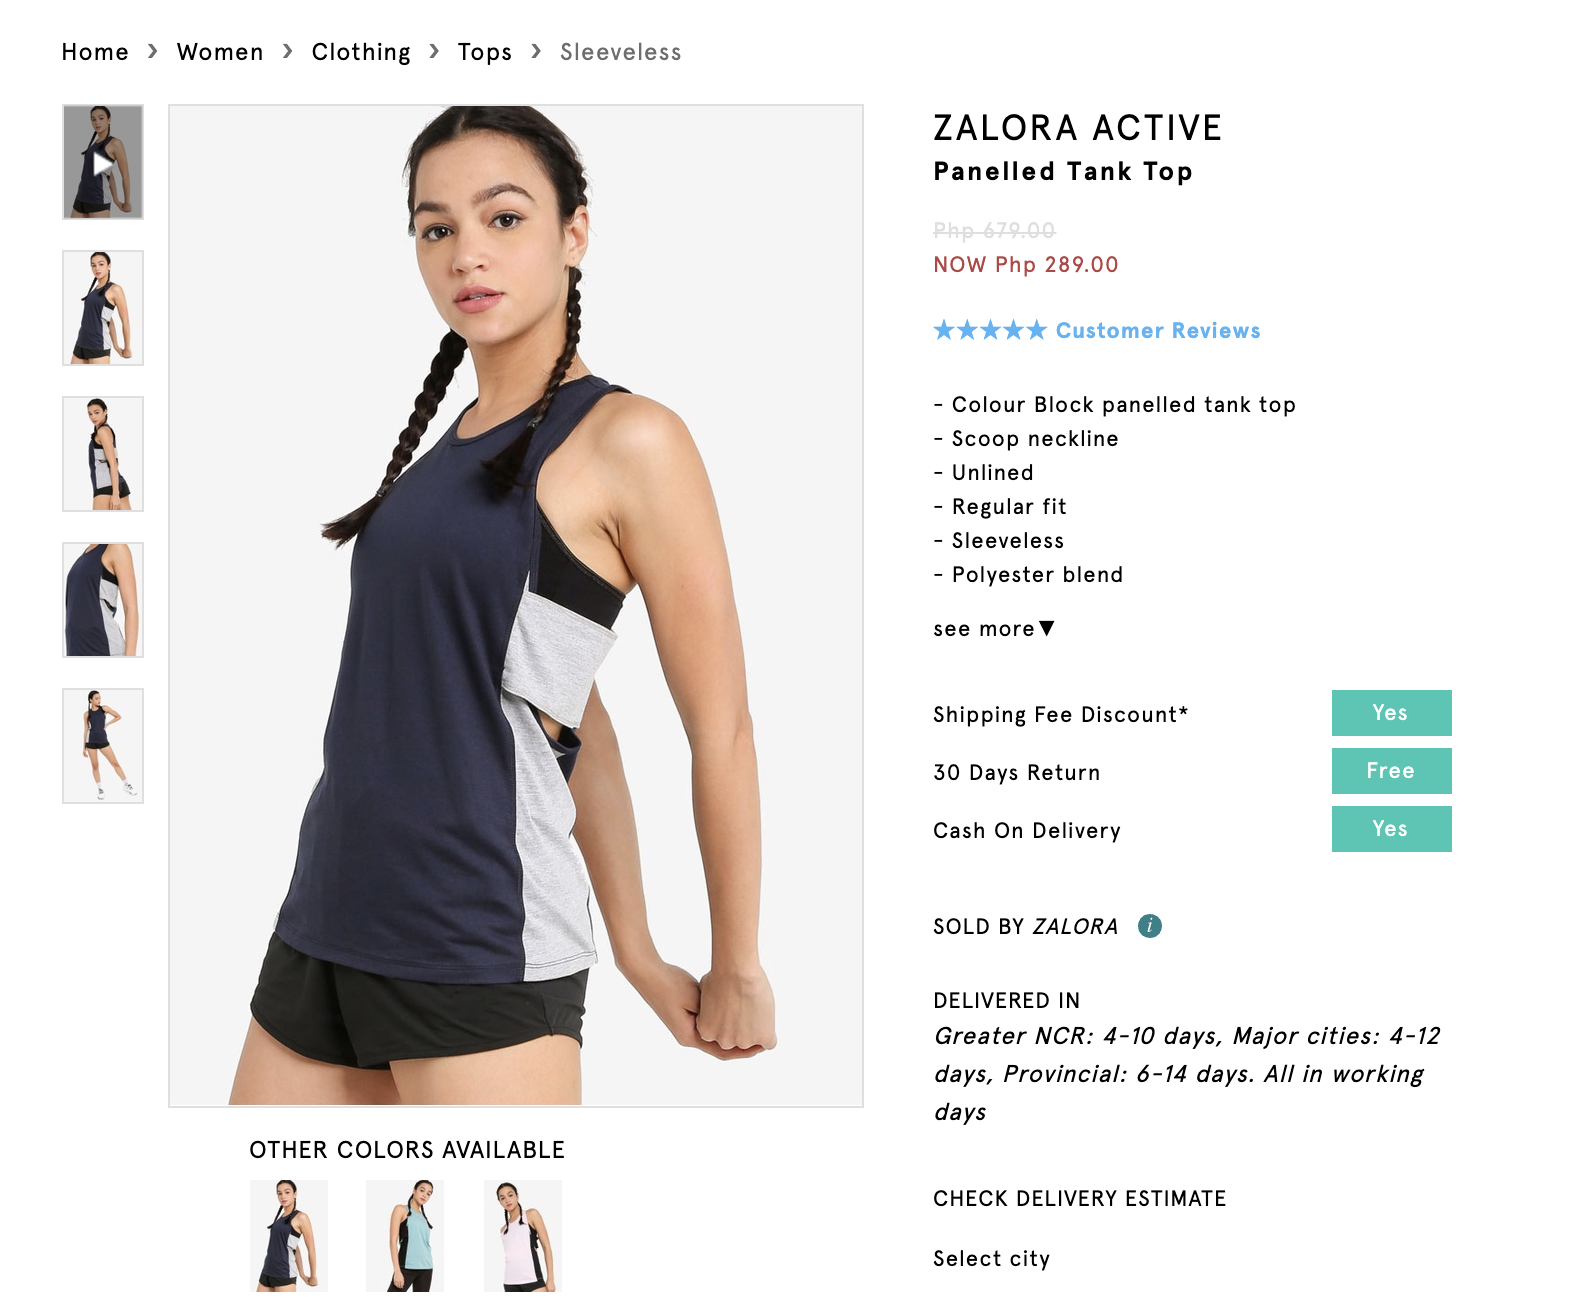 Screenshot of Zalora Active Panelled Tank Top